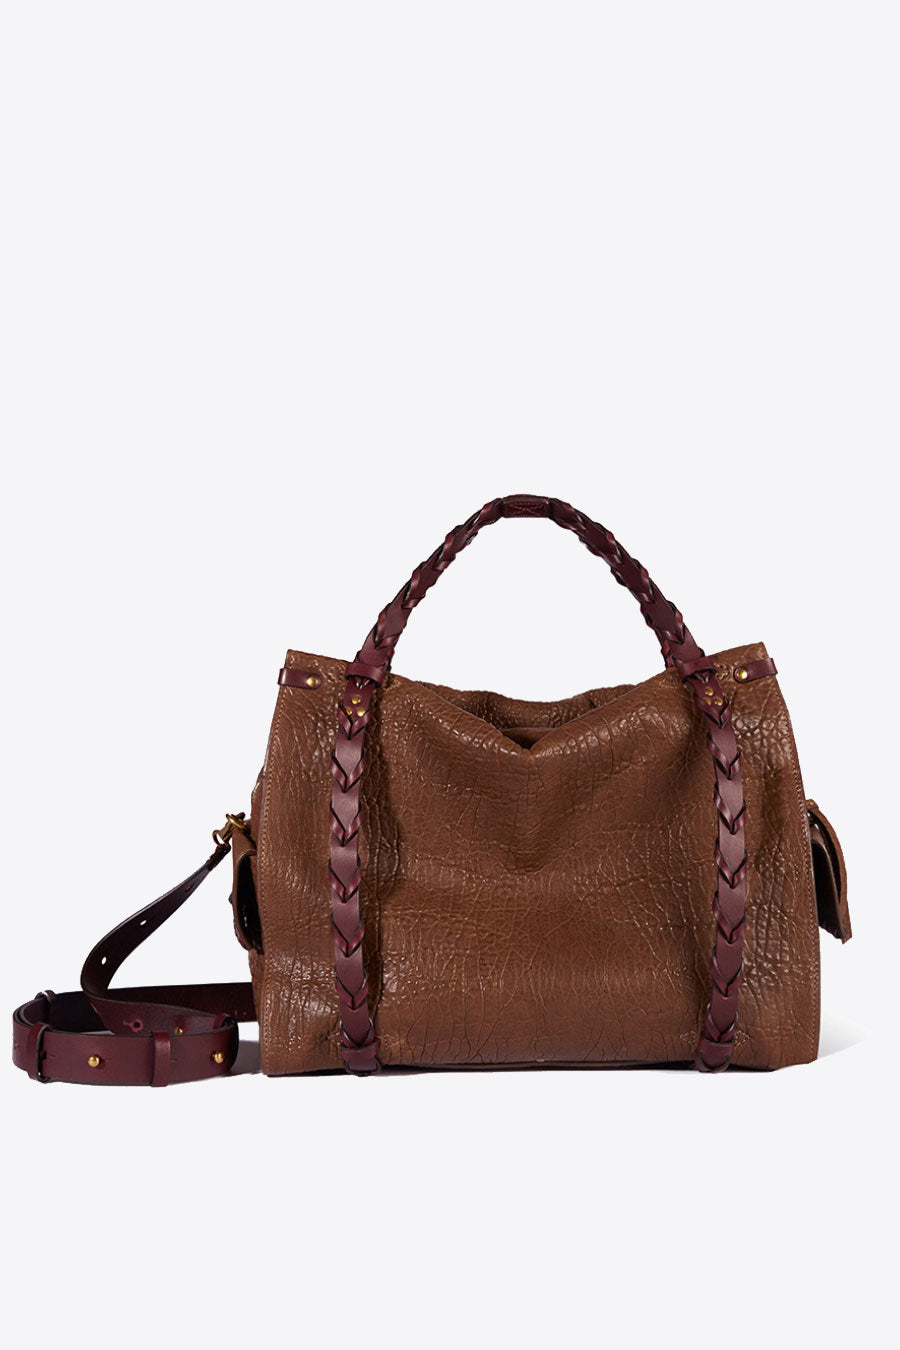 Yannick Handbag in Bronze